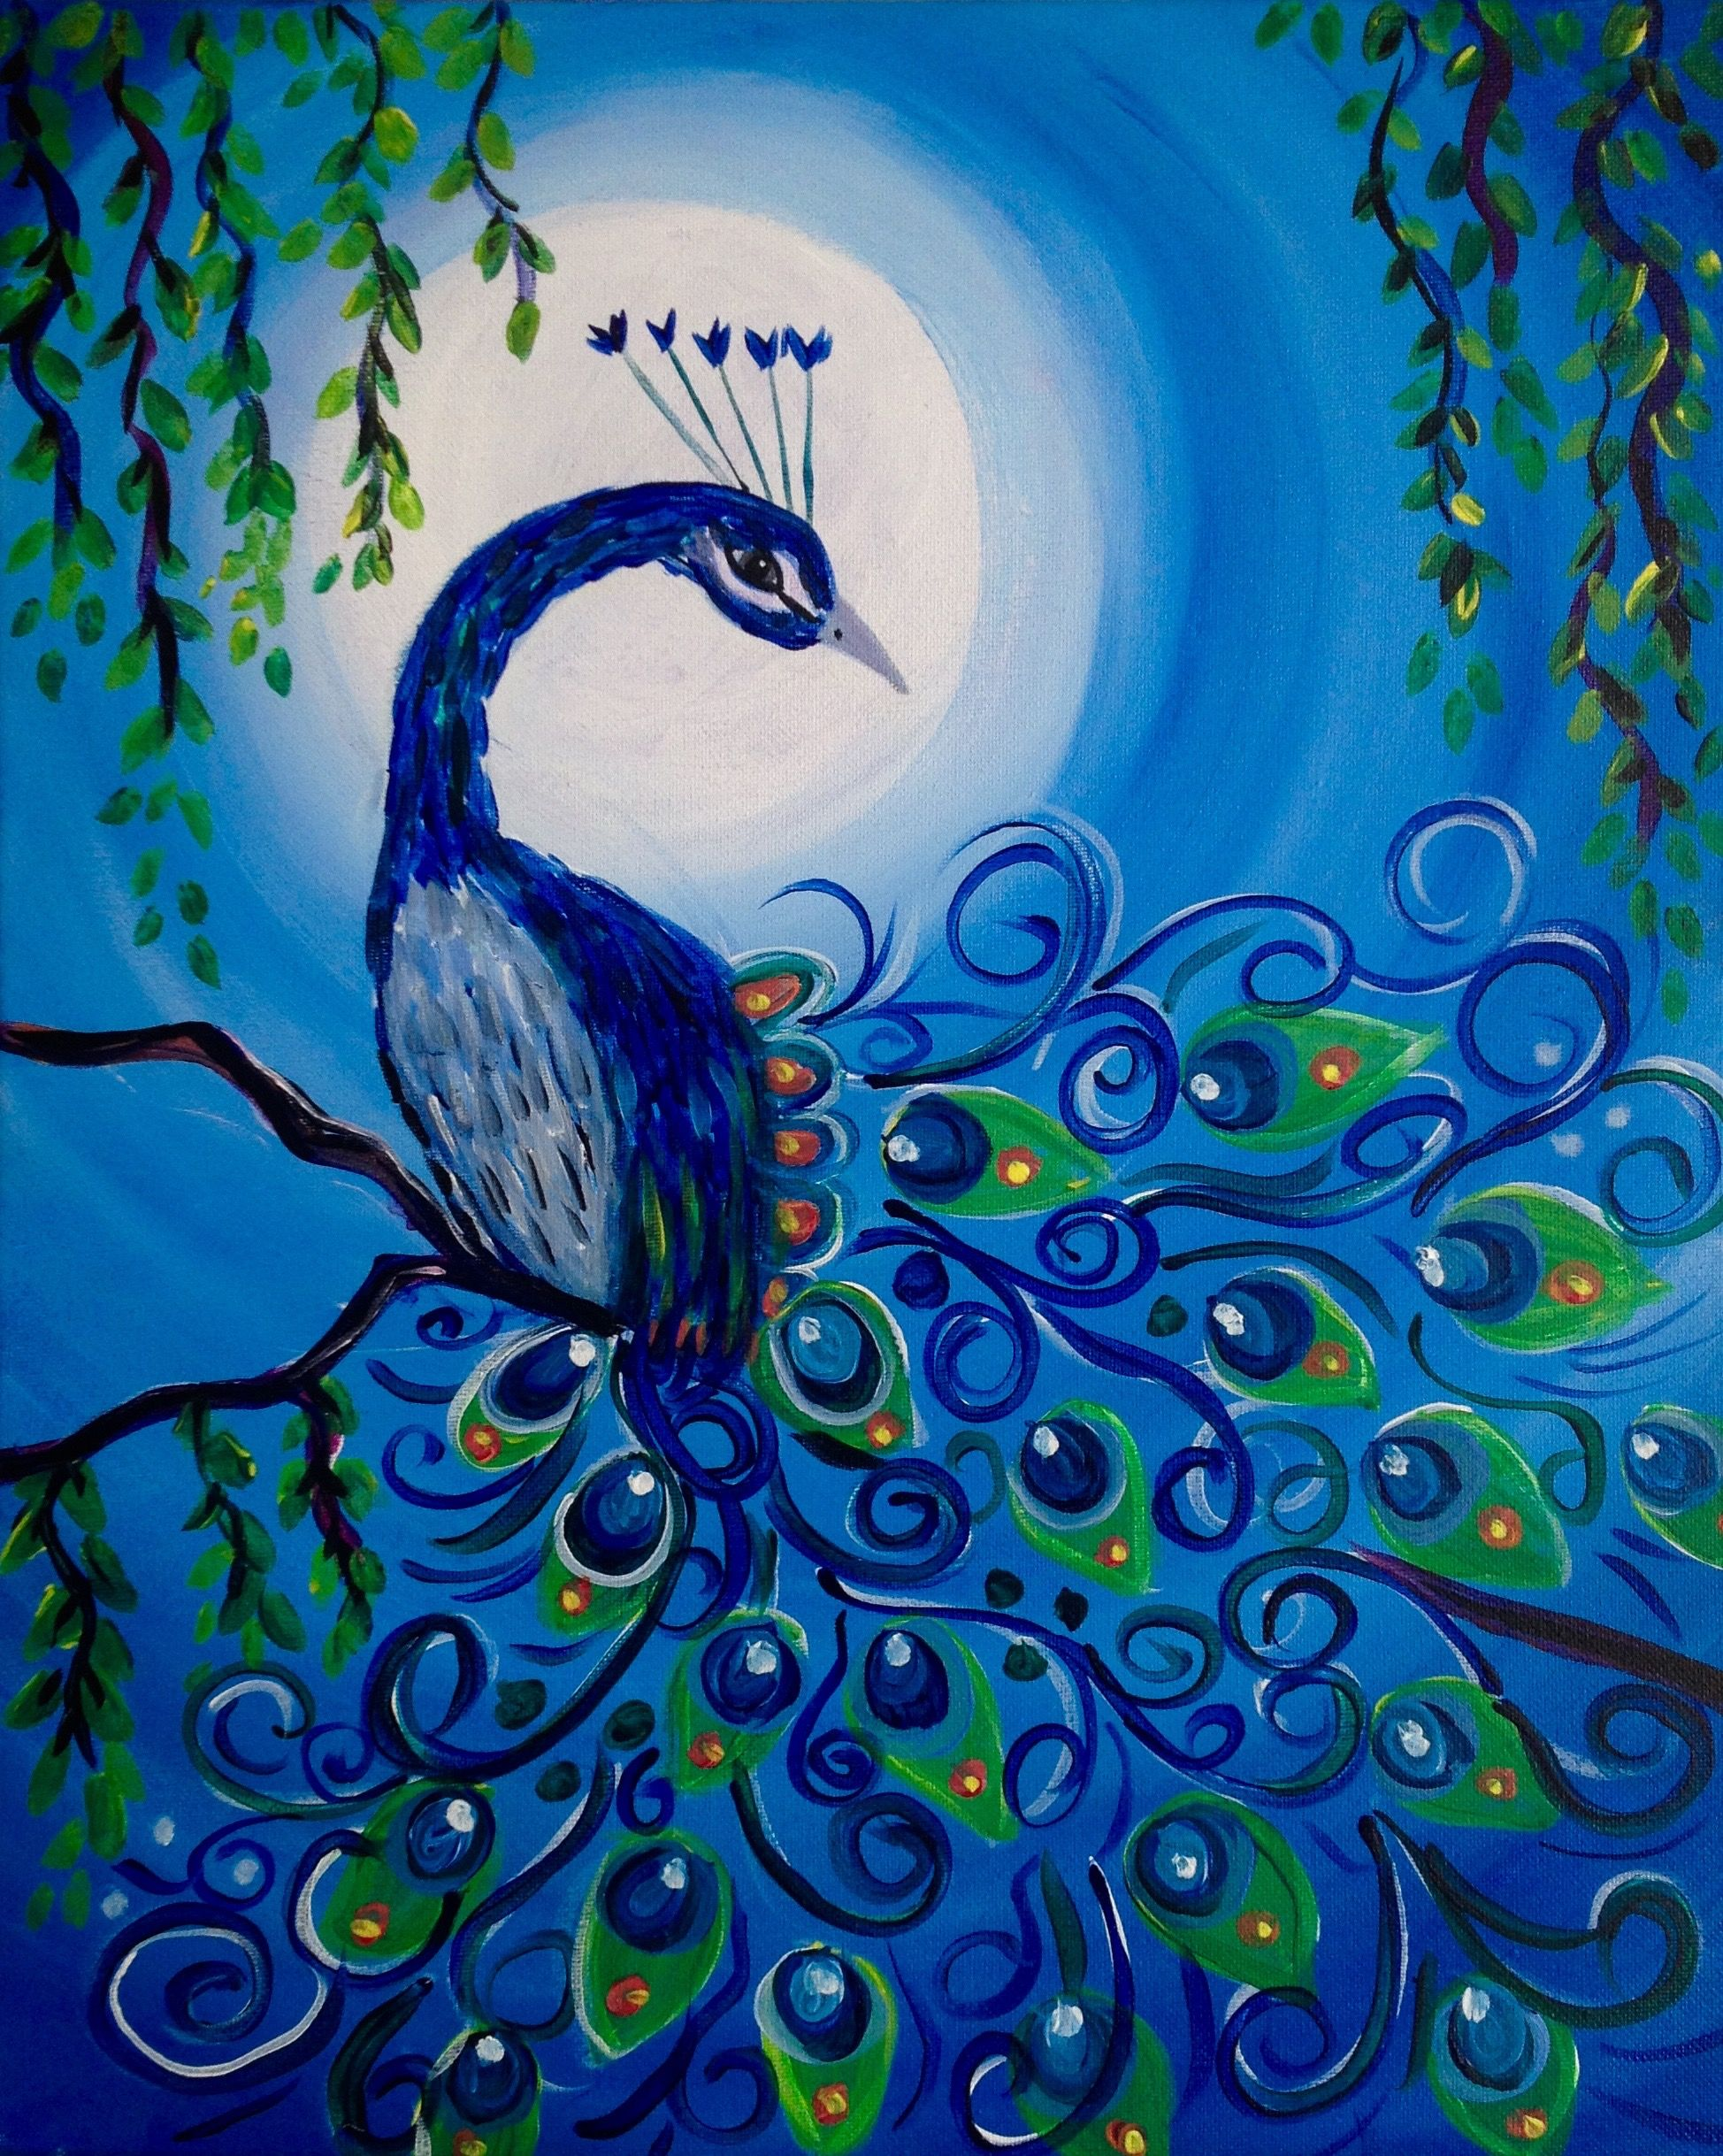 Check out Moonlit Peacock at Mimi's Cafe (Beavercreek) - Paint Nite Event